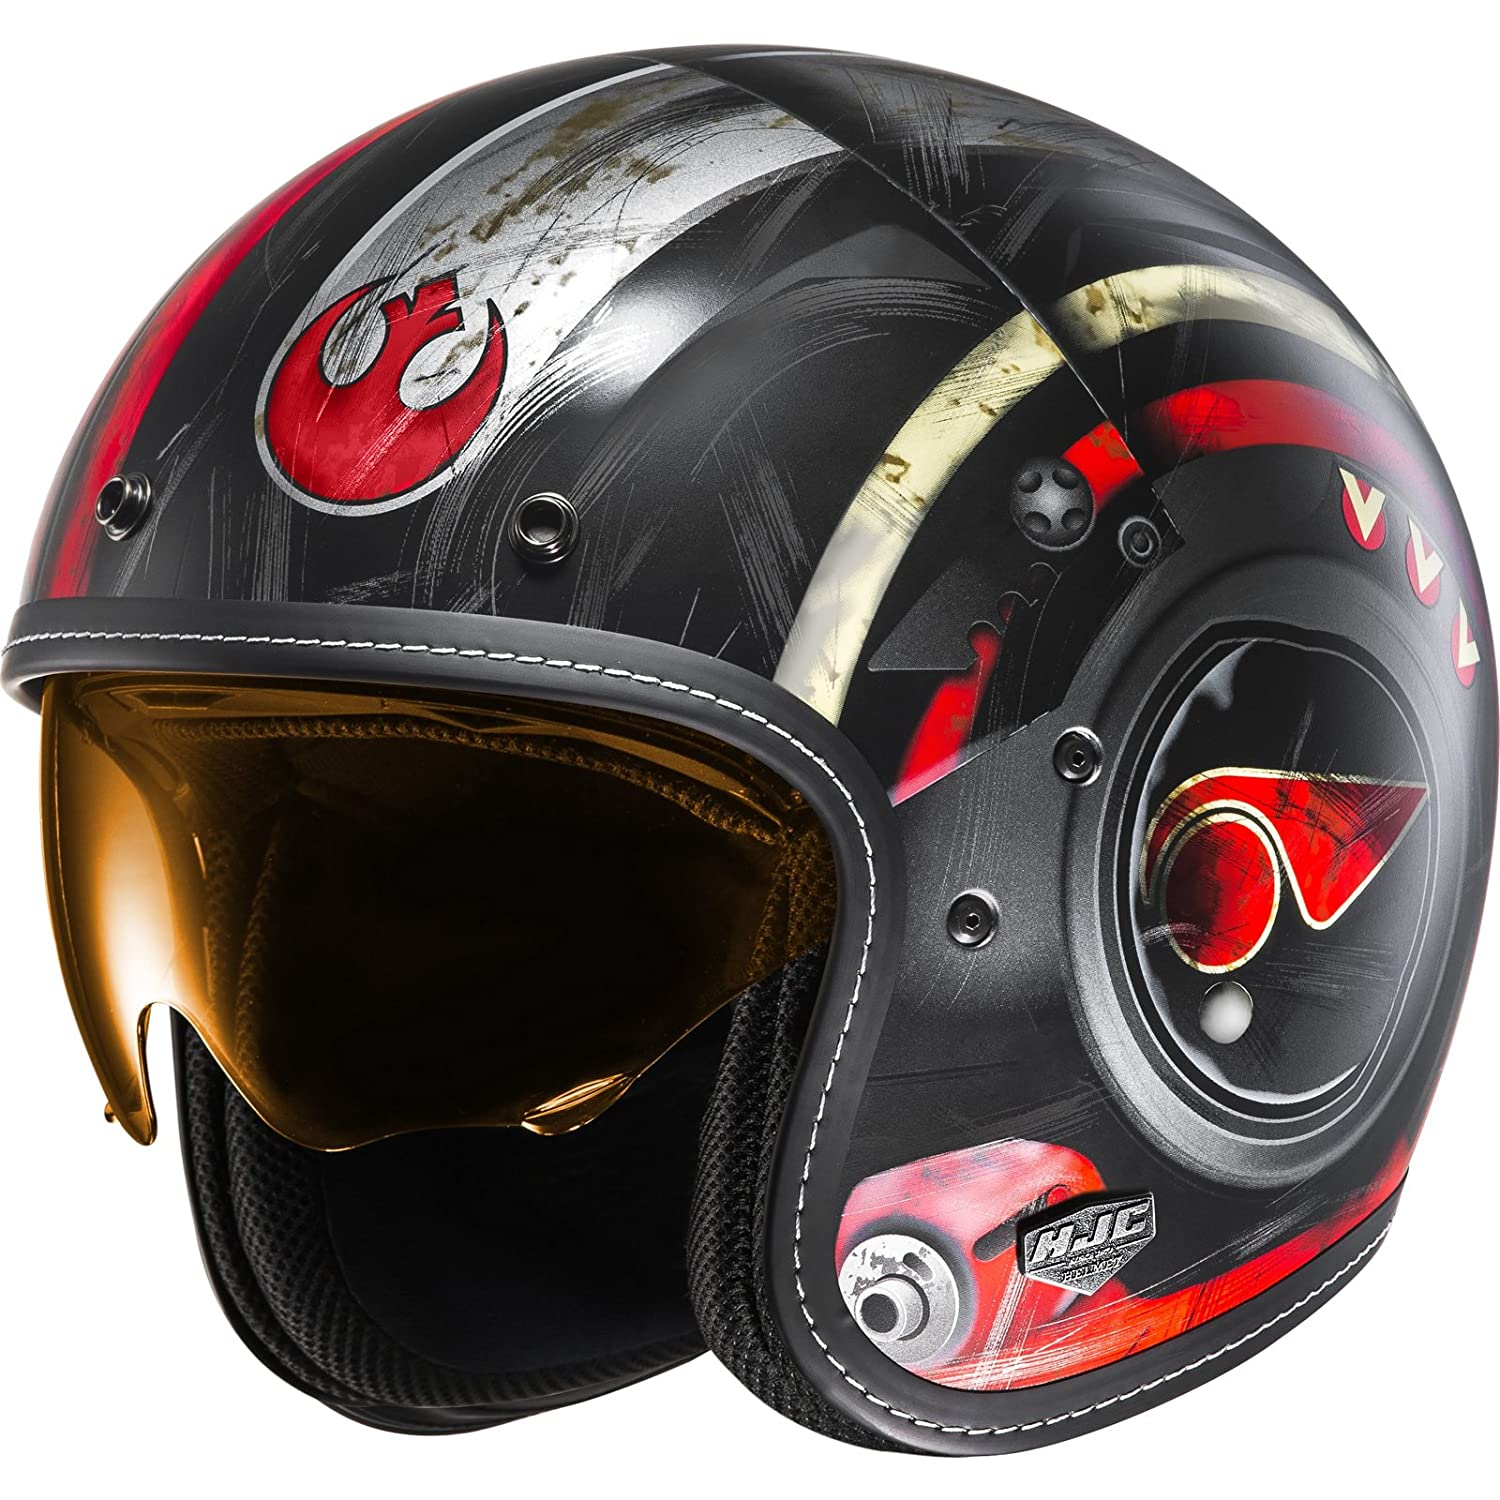 Amazon.es: Casco Abierto Moto Hjc Star Wars Fg-70 Dameron Rojo (M, Rojo)